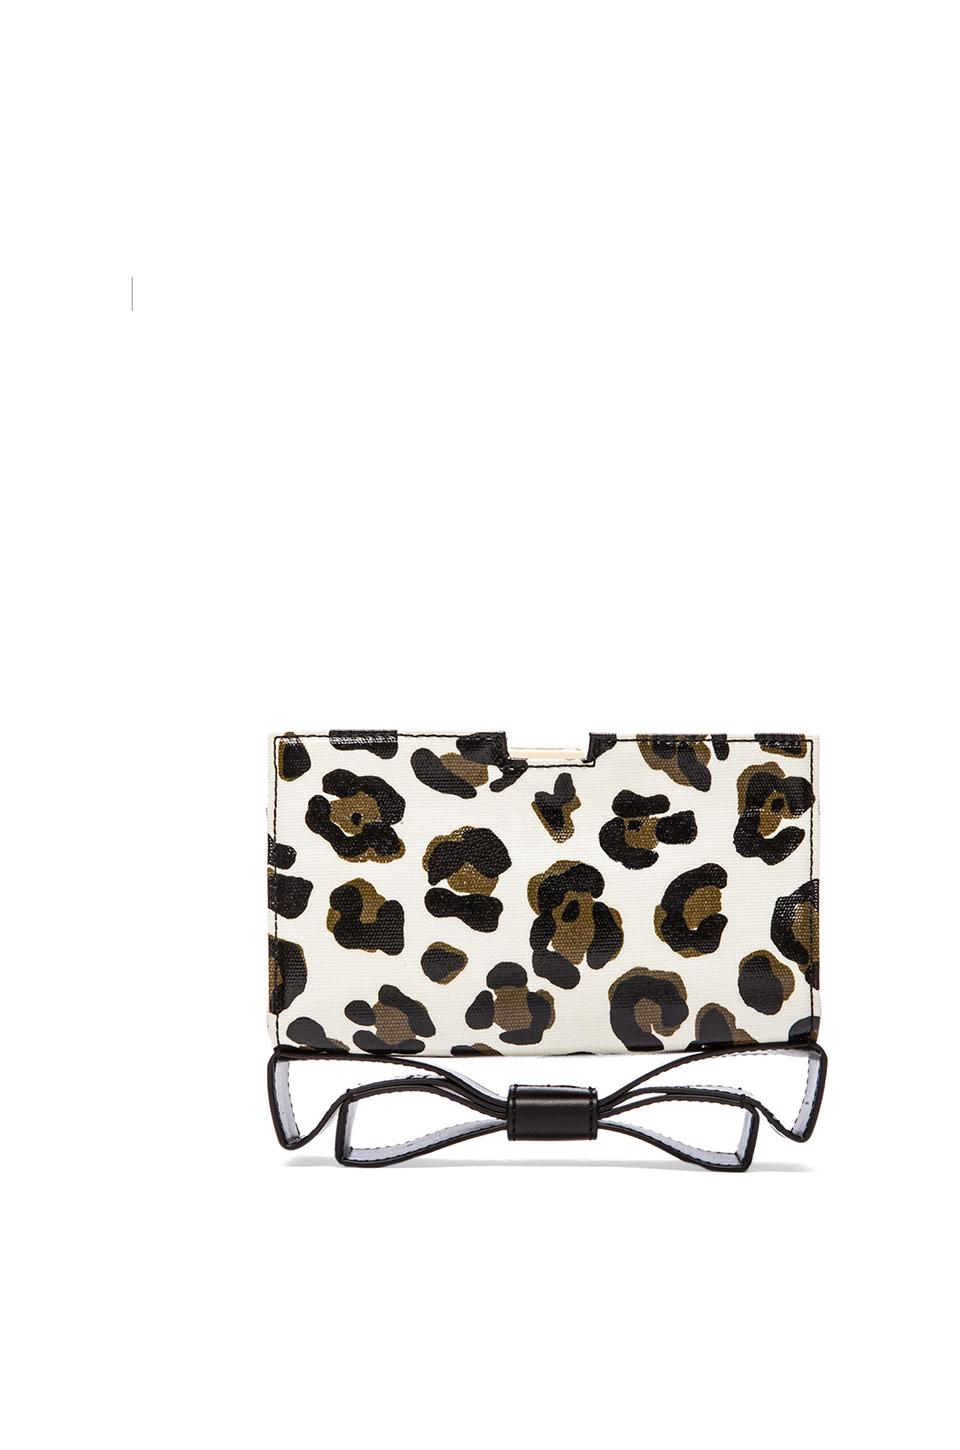 Zac Zac Posen Milla Small Frame Clutch in White